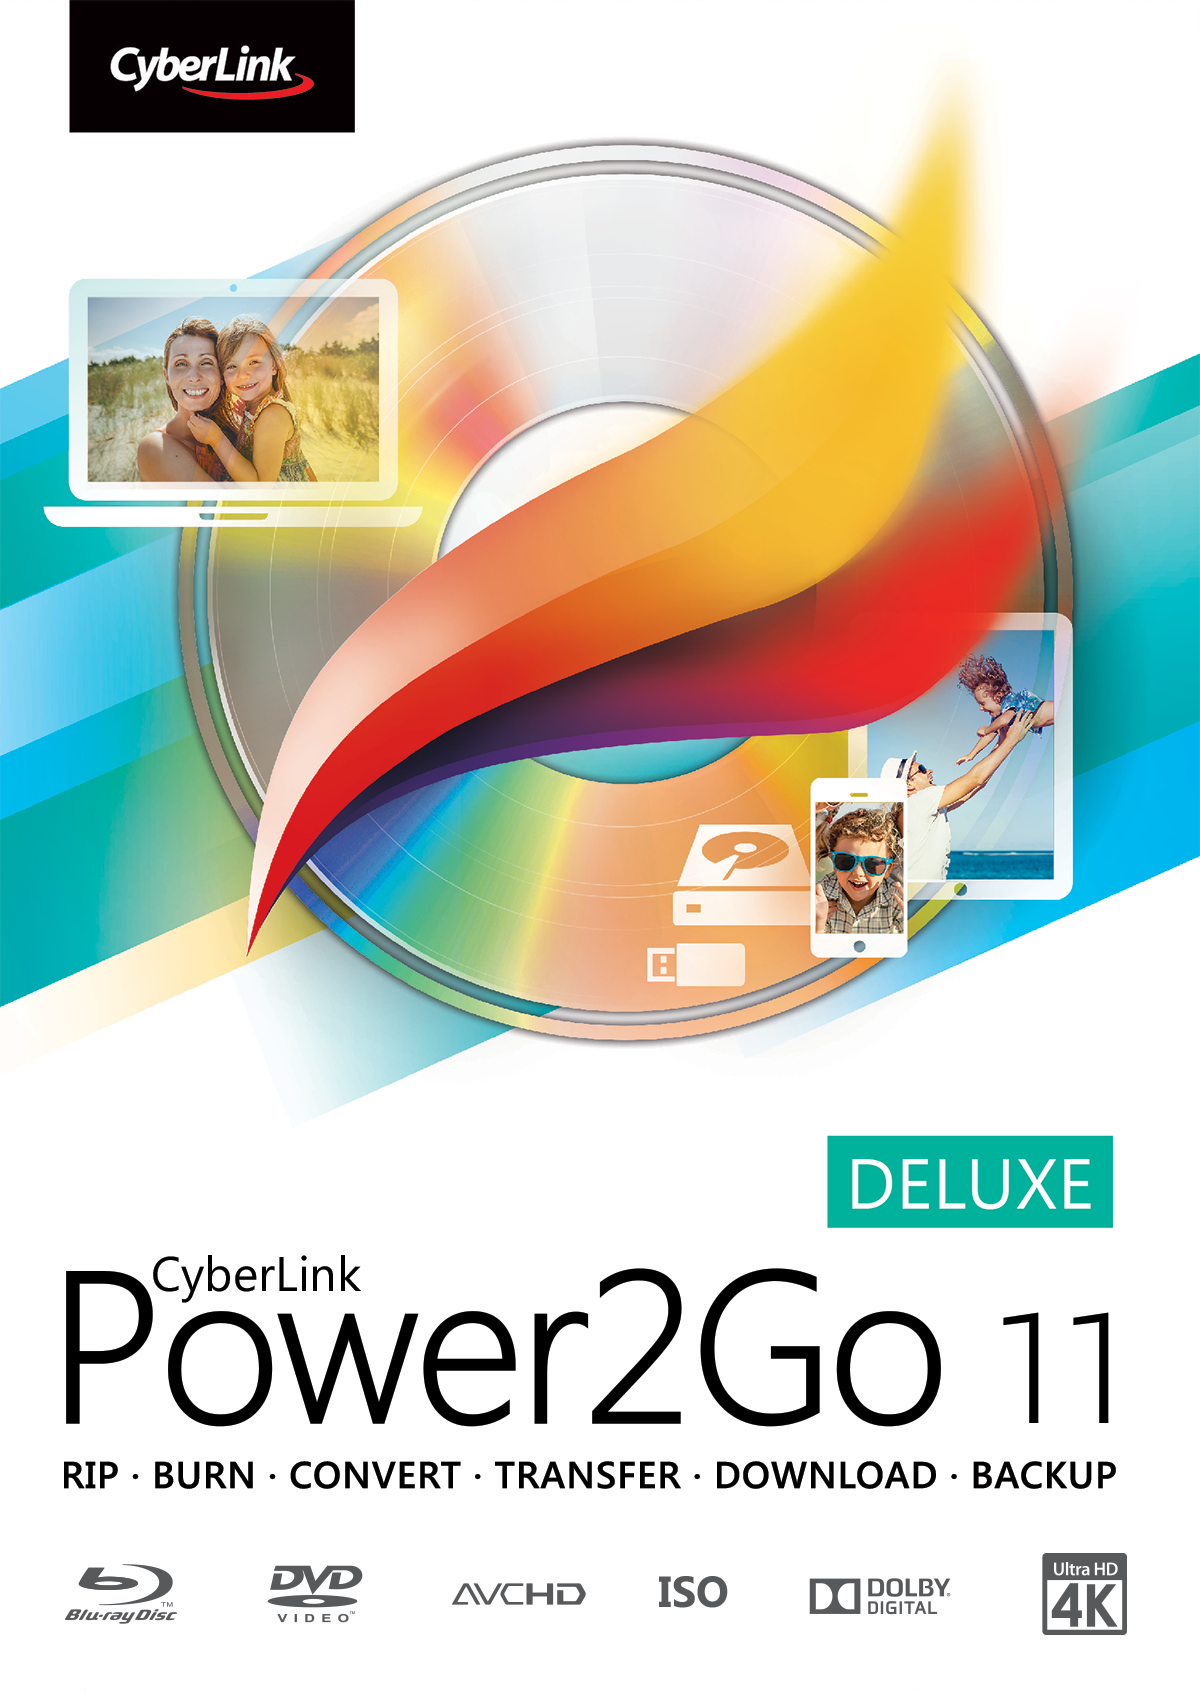 cyberlink-power2go-11-deluxe-download